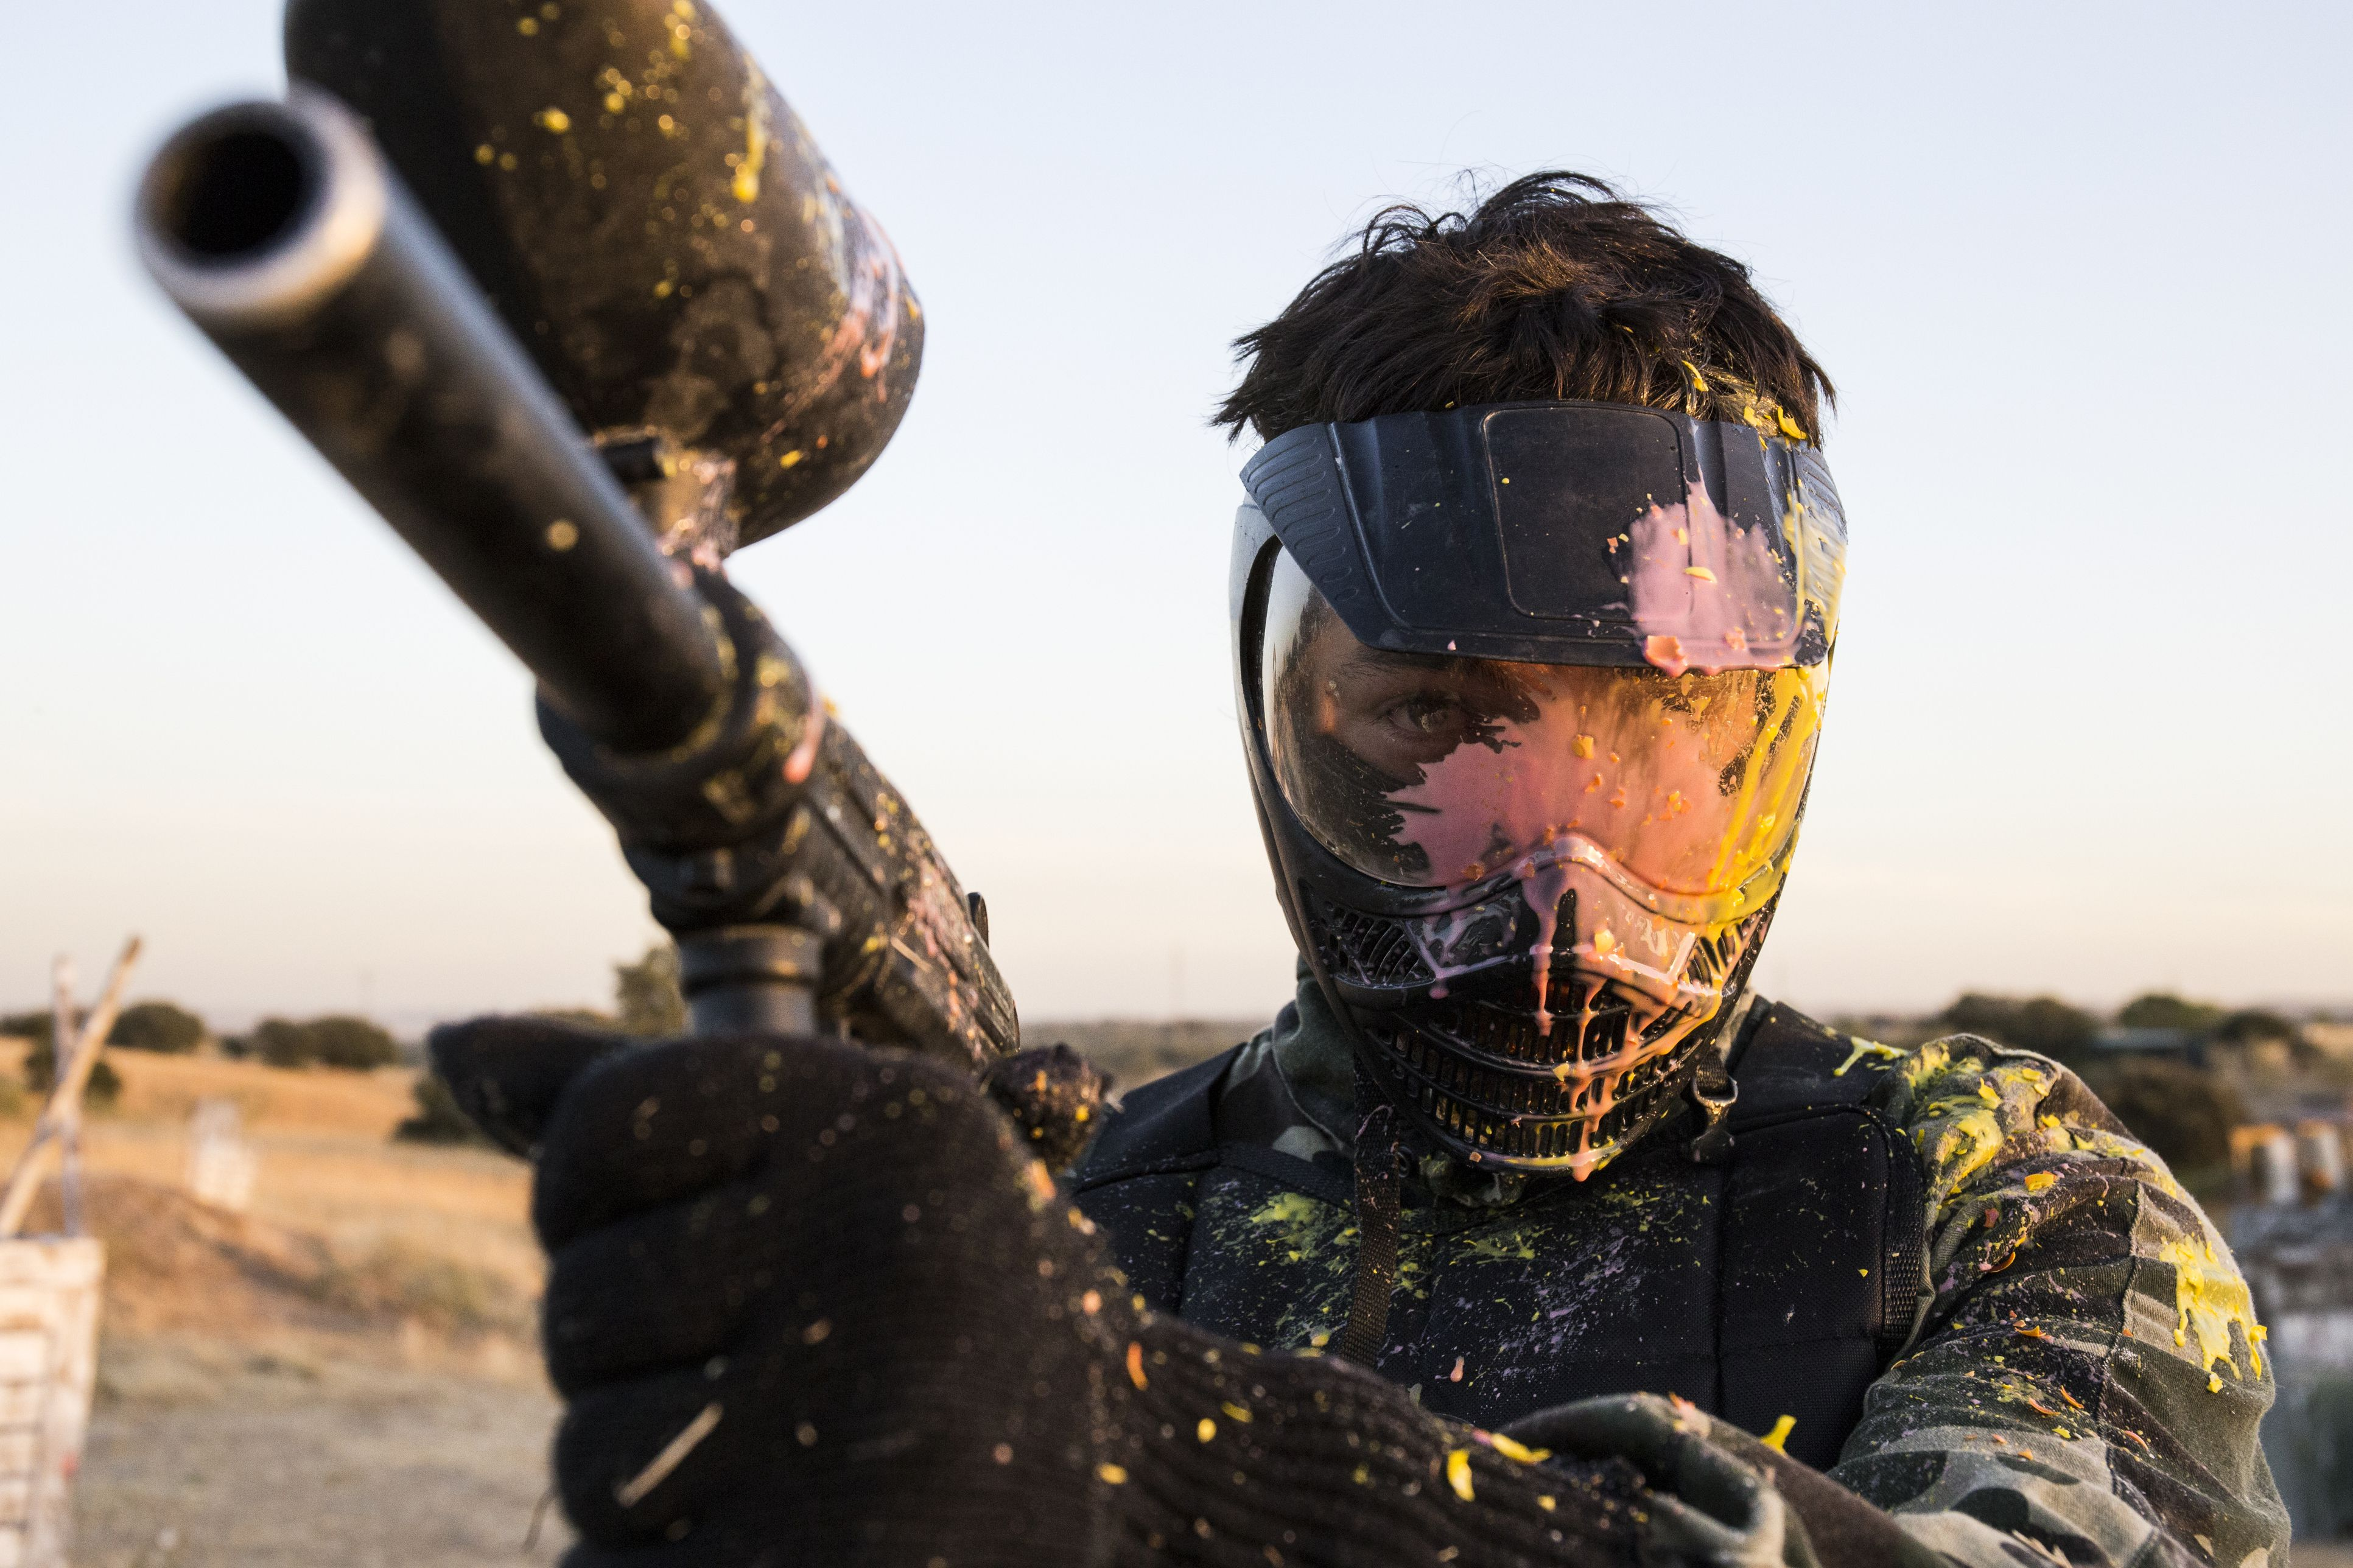 Electronic Vs Mechancial Paintball Guns The Circuit Is Designed To Produce A Gun Using Technology Of Basics